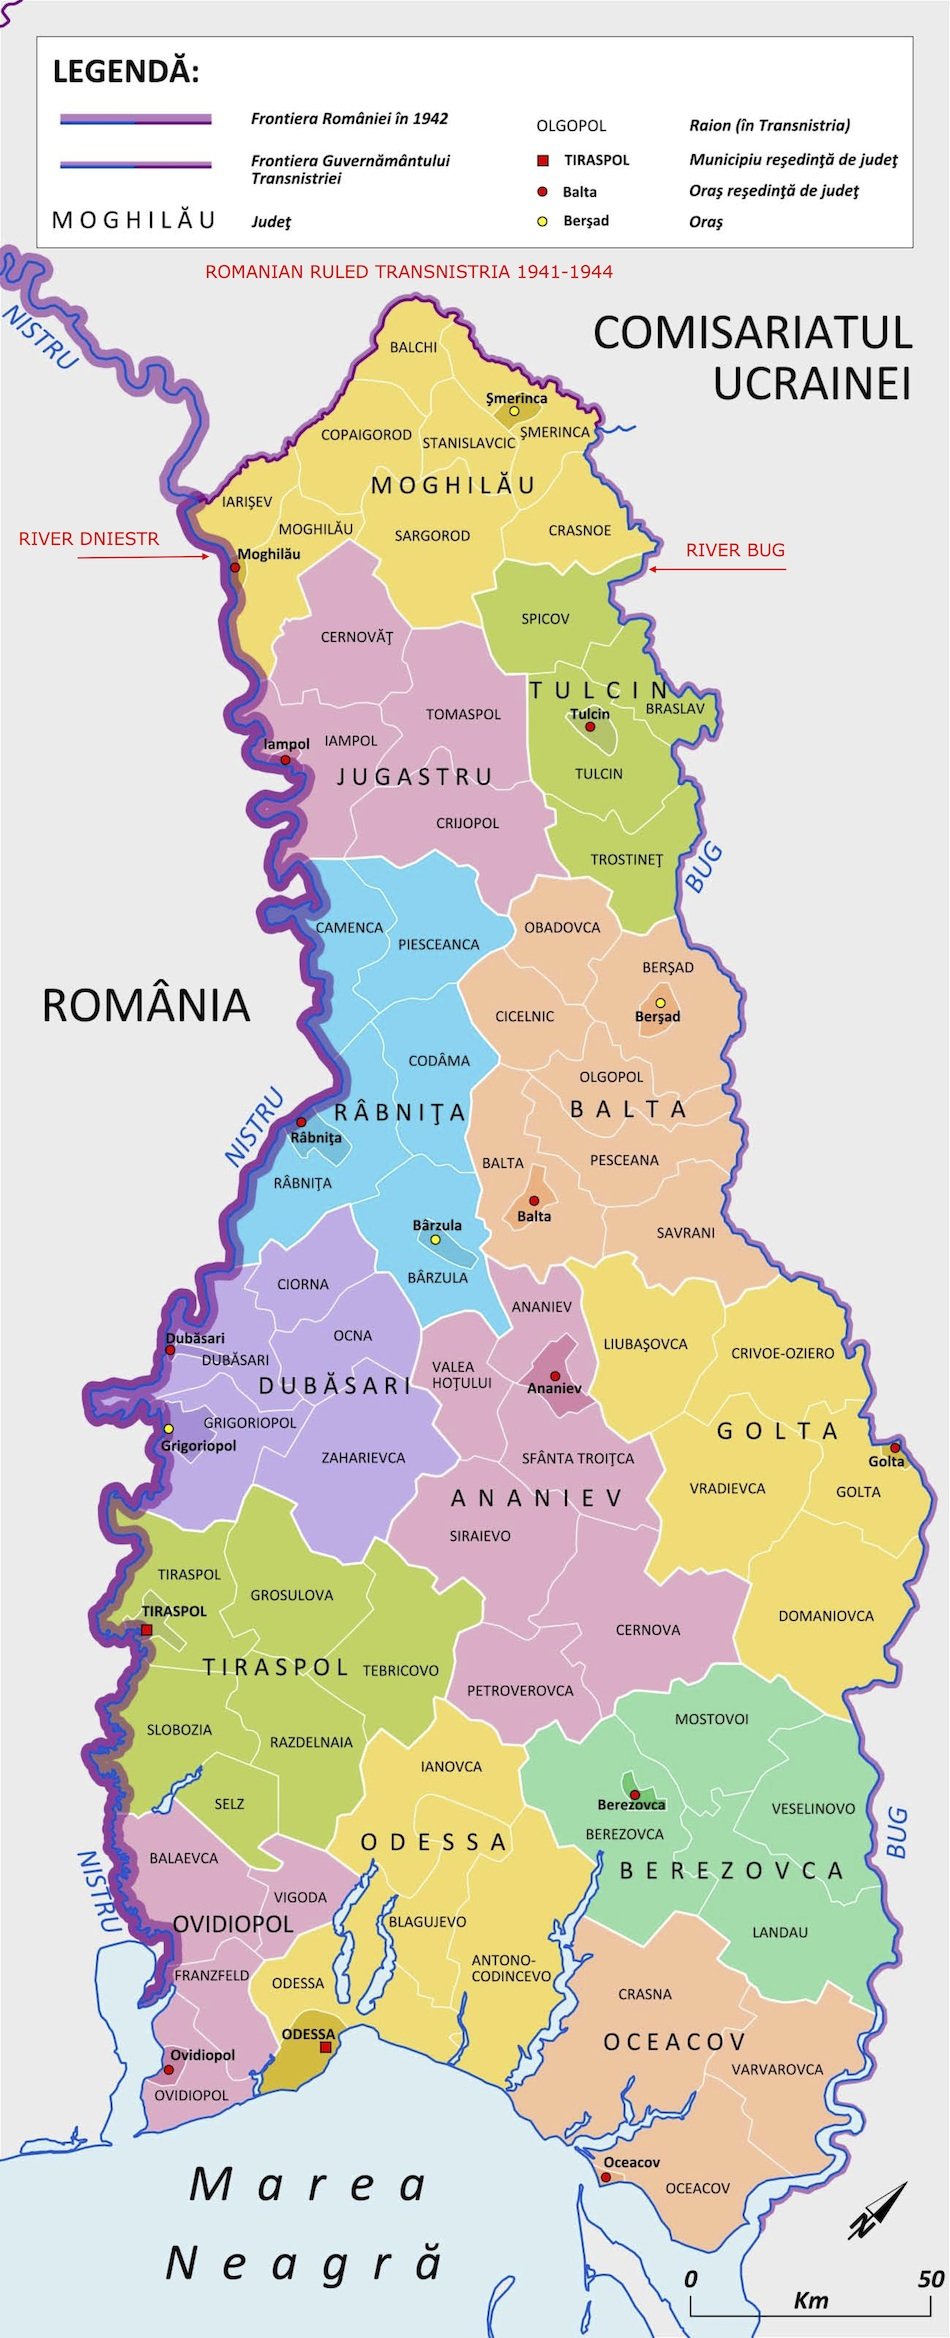 Maps The Ehpes Blog - Transnistria map